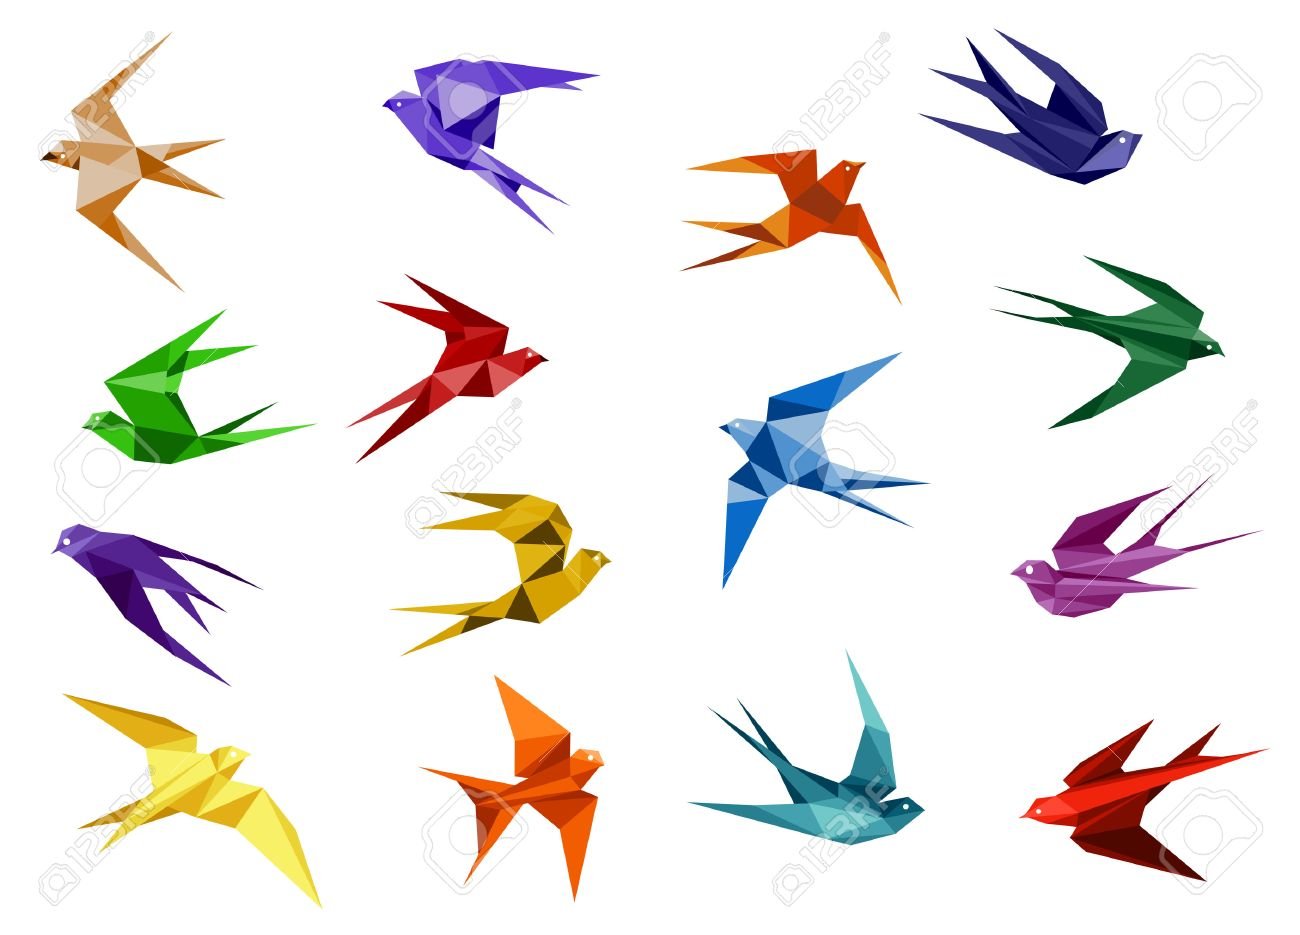 Colorful Origami Paper Swallow Birds In Flight Isolated On White Background For Logo Or Emblem Design